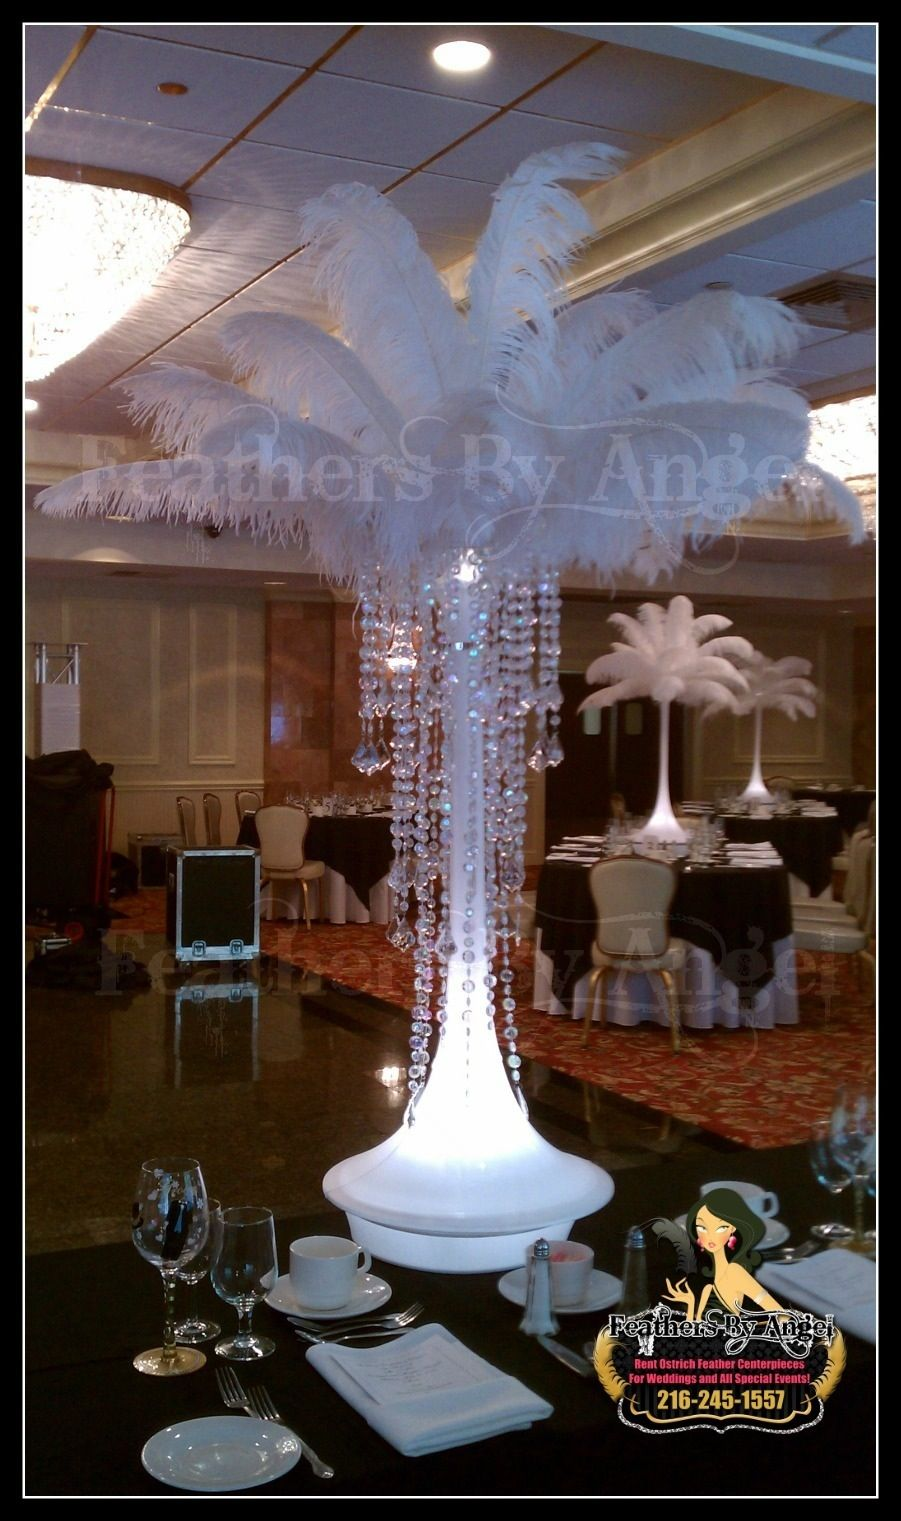 Ostrich feather centerpieces add hanging crystals from